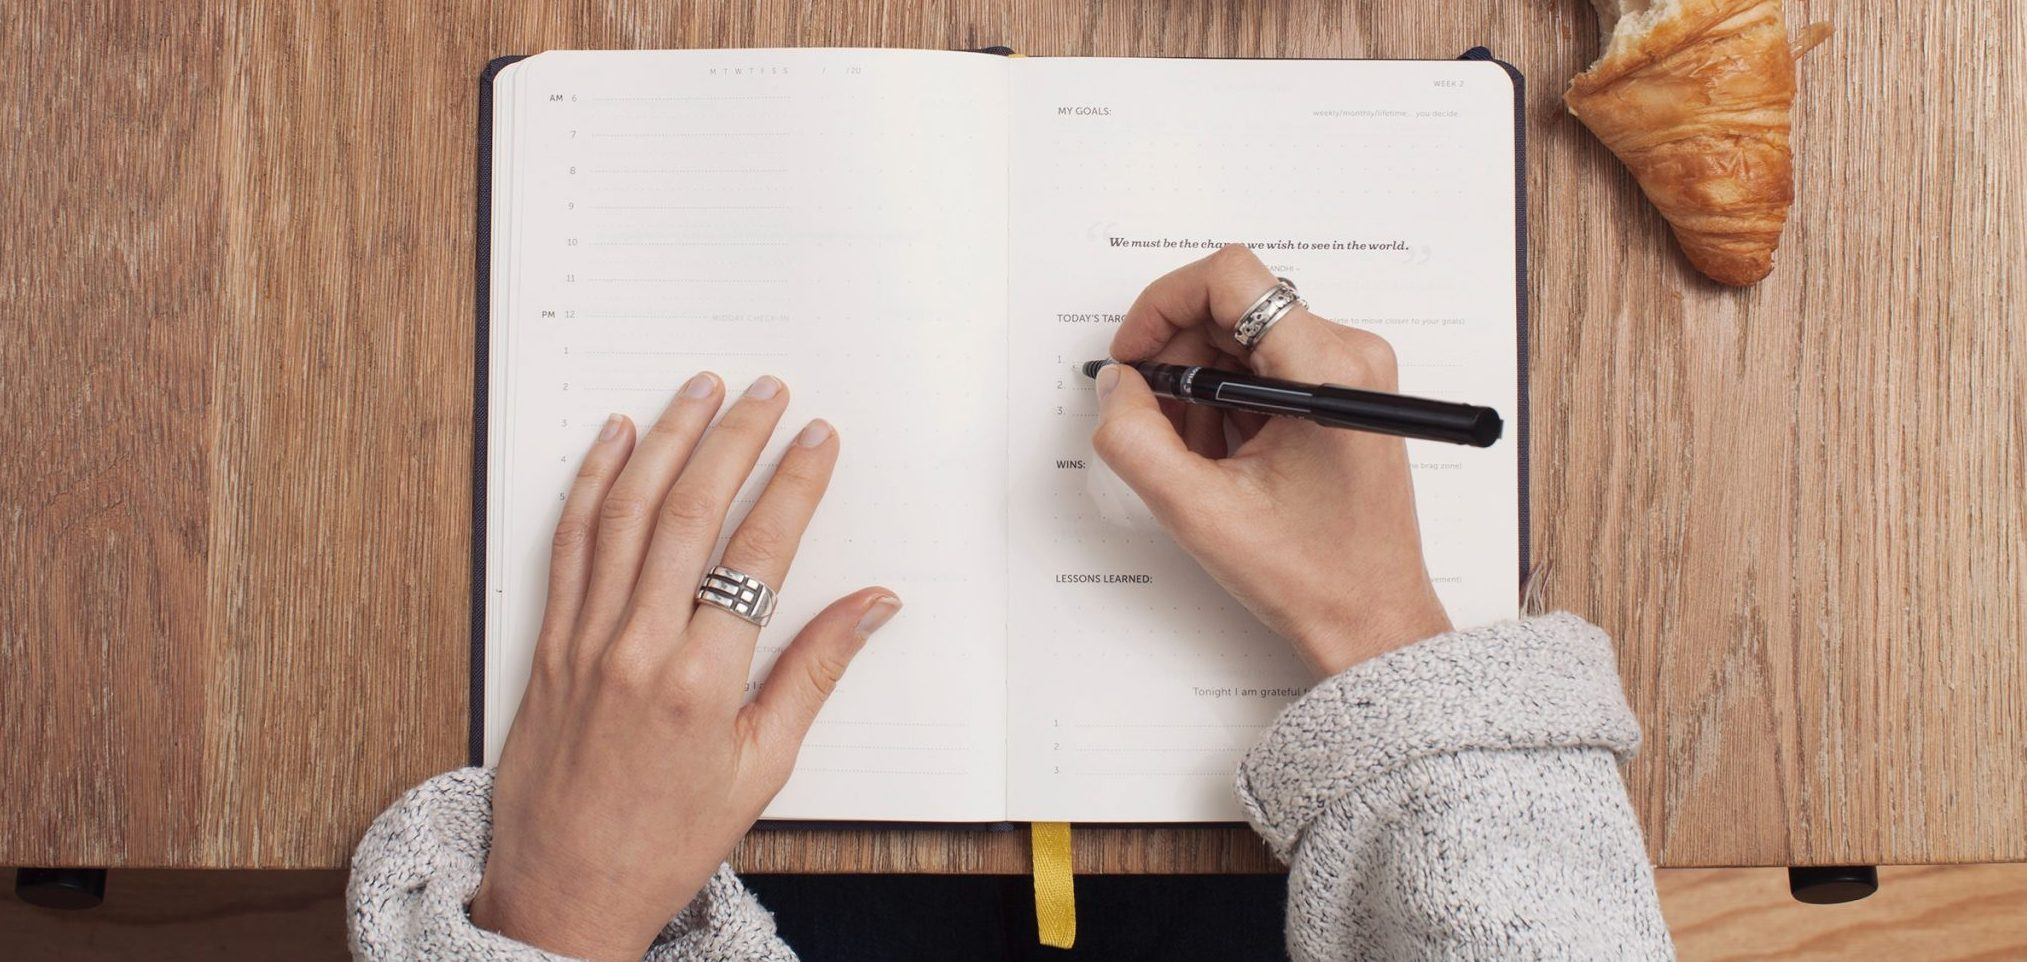 Learn how to plan your life and reach your goals